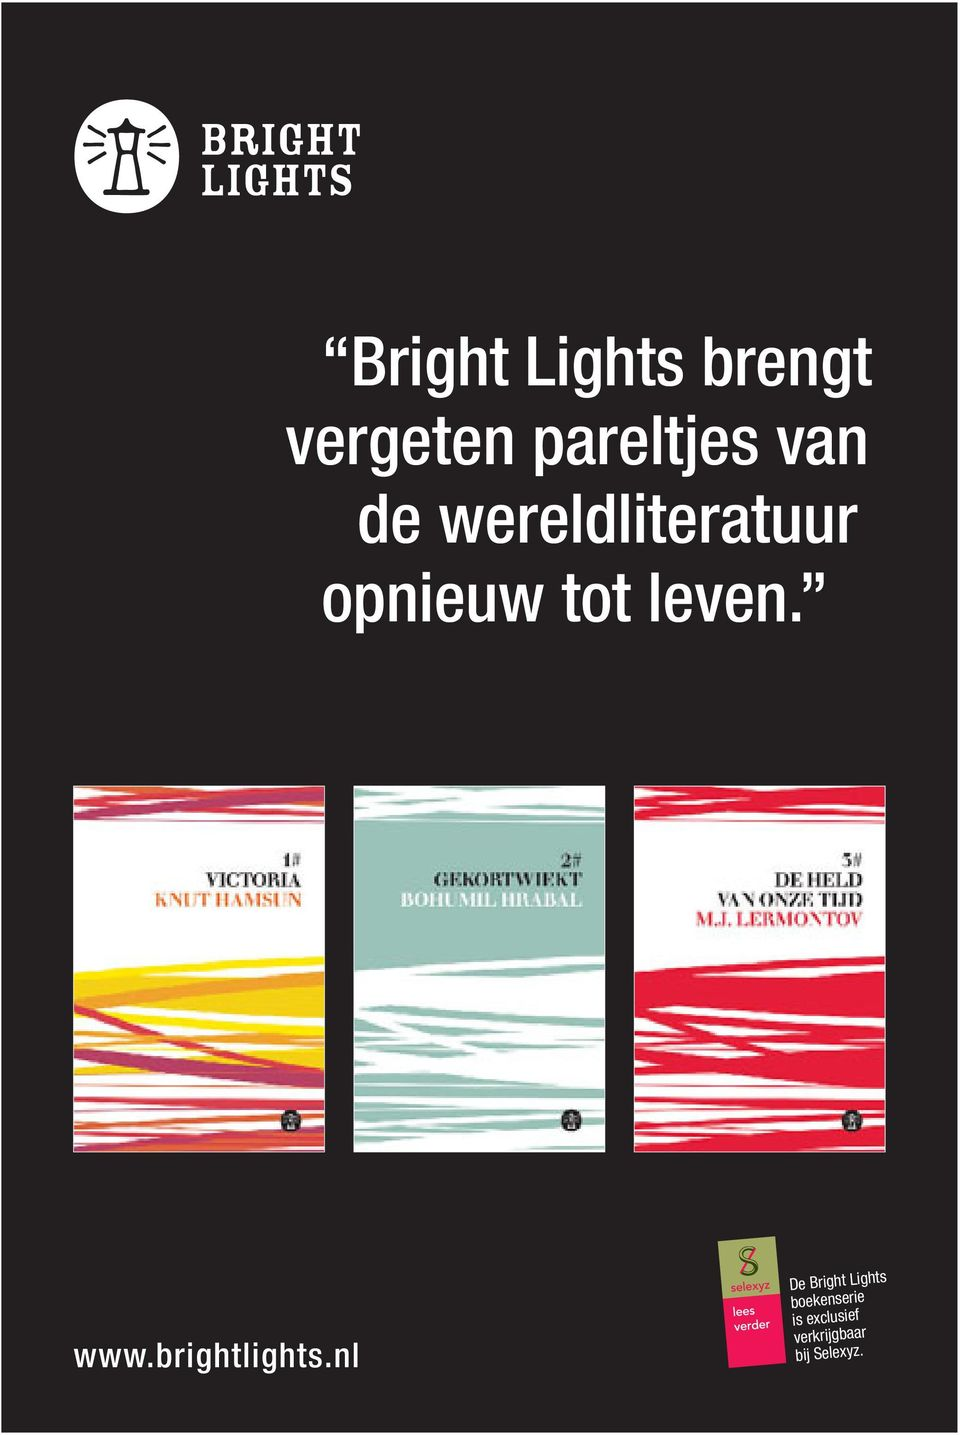 www.brightlights.